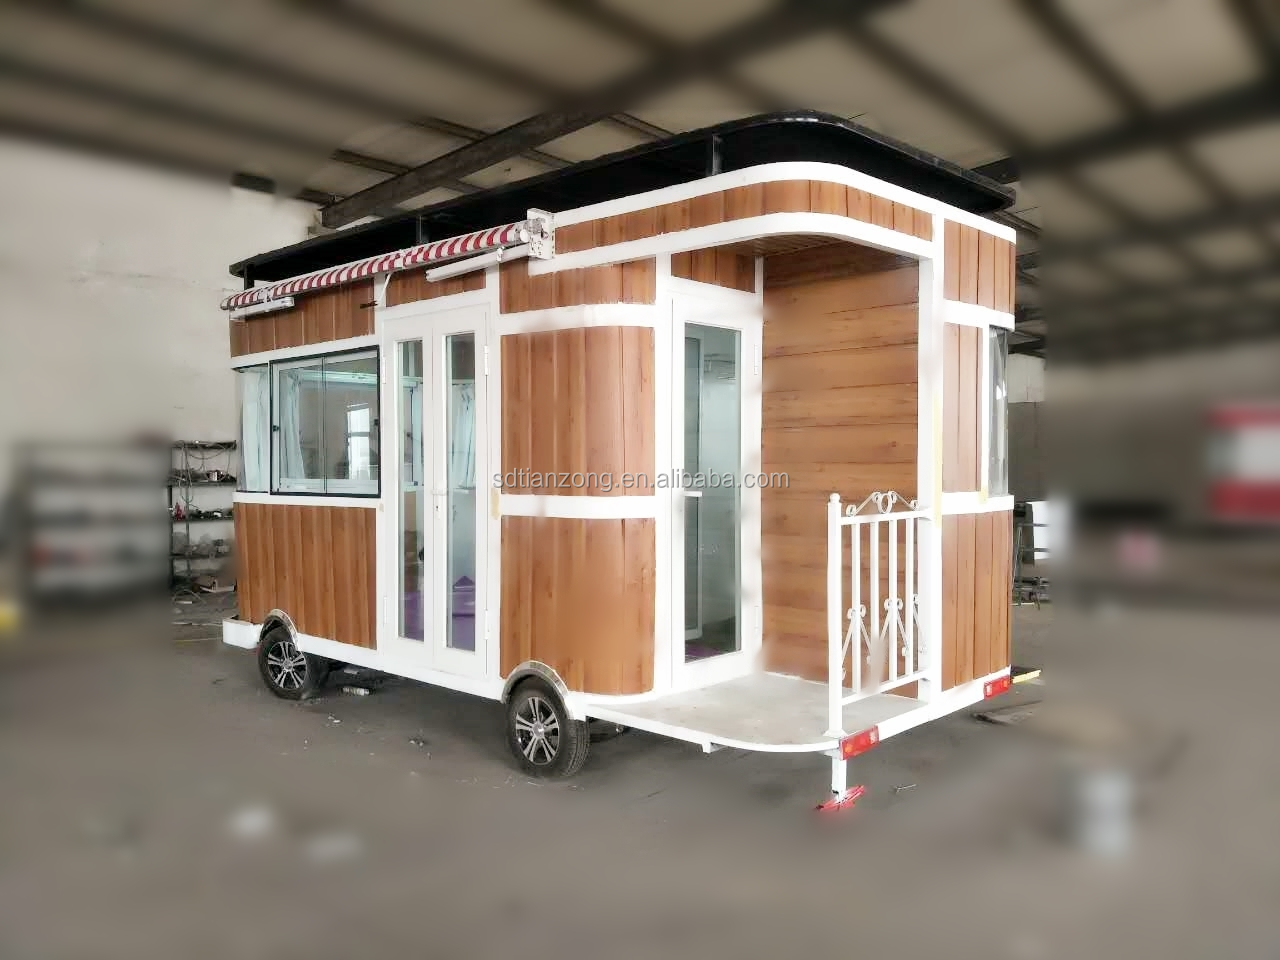 Factory Price Of Four Wheel Custom Electric Outdoor Food Truck /travel  Trailer Caravan For Sale - Buy Travel Trailer,Outdoor House,Food Truck  Product